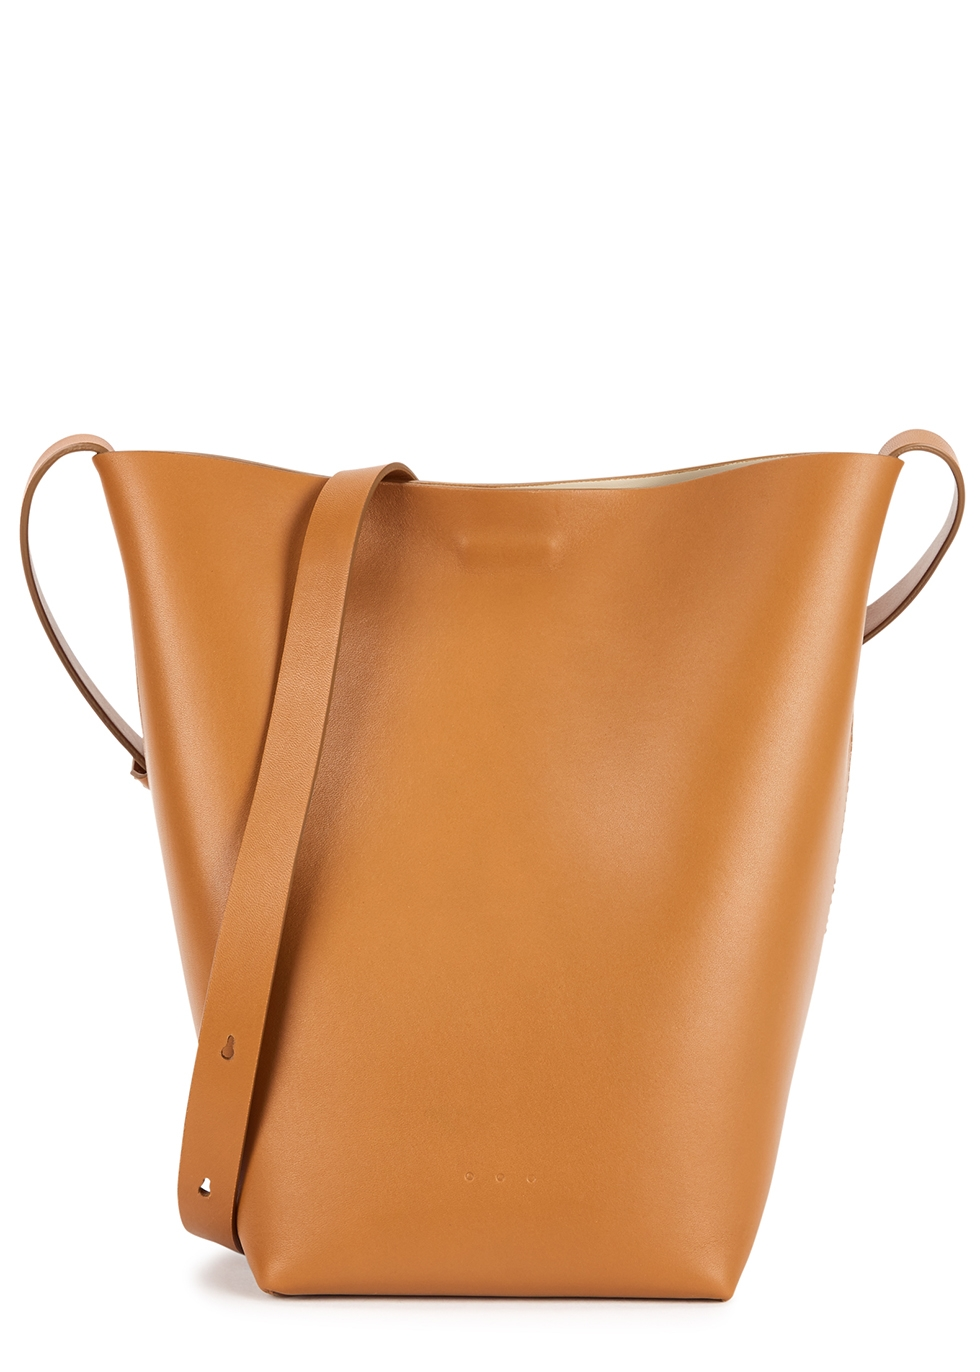 Midi Sac brown leather shoulder bag